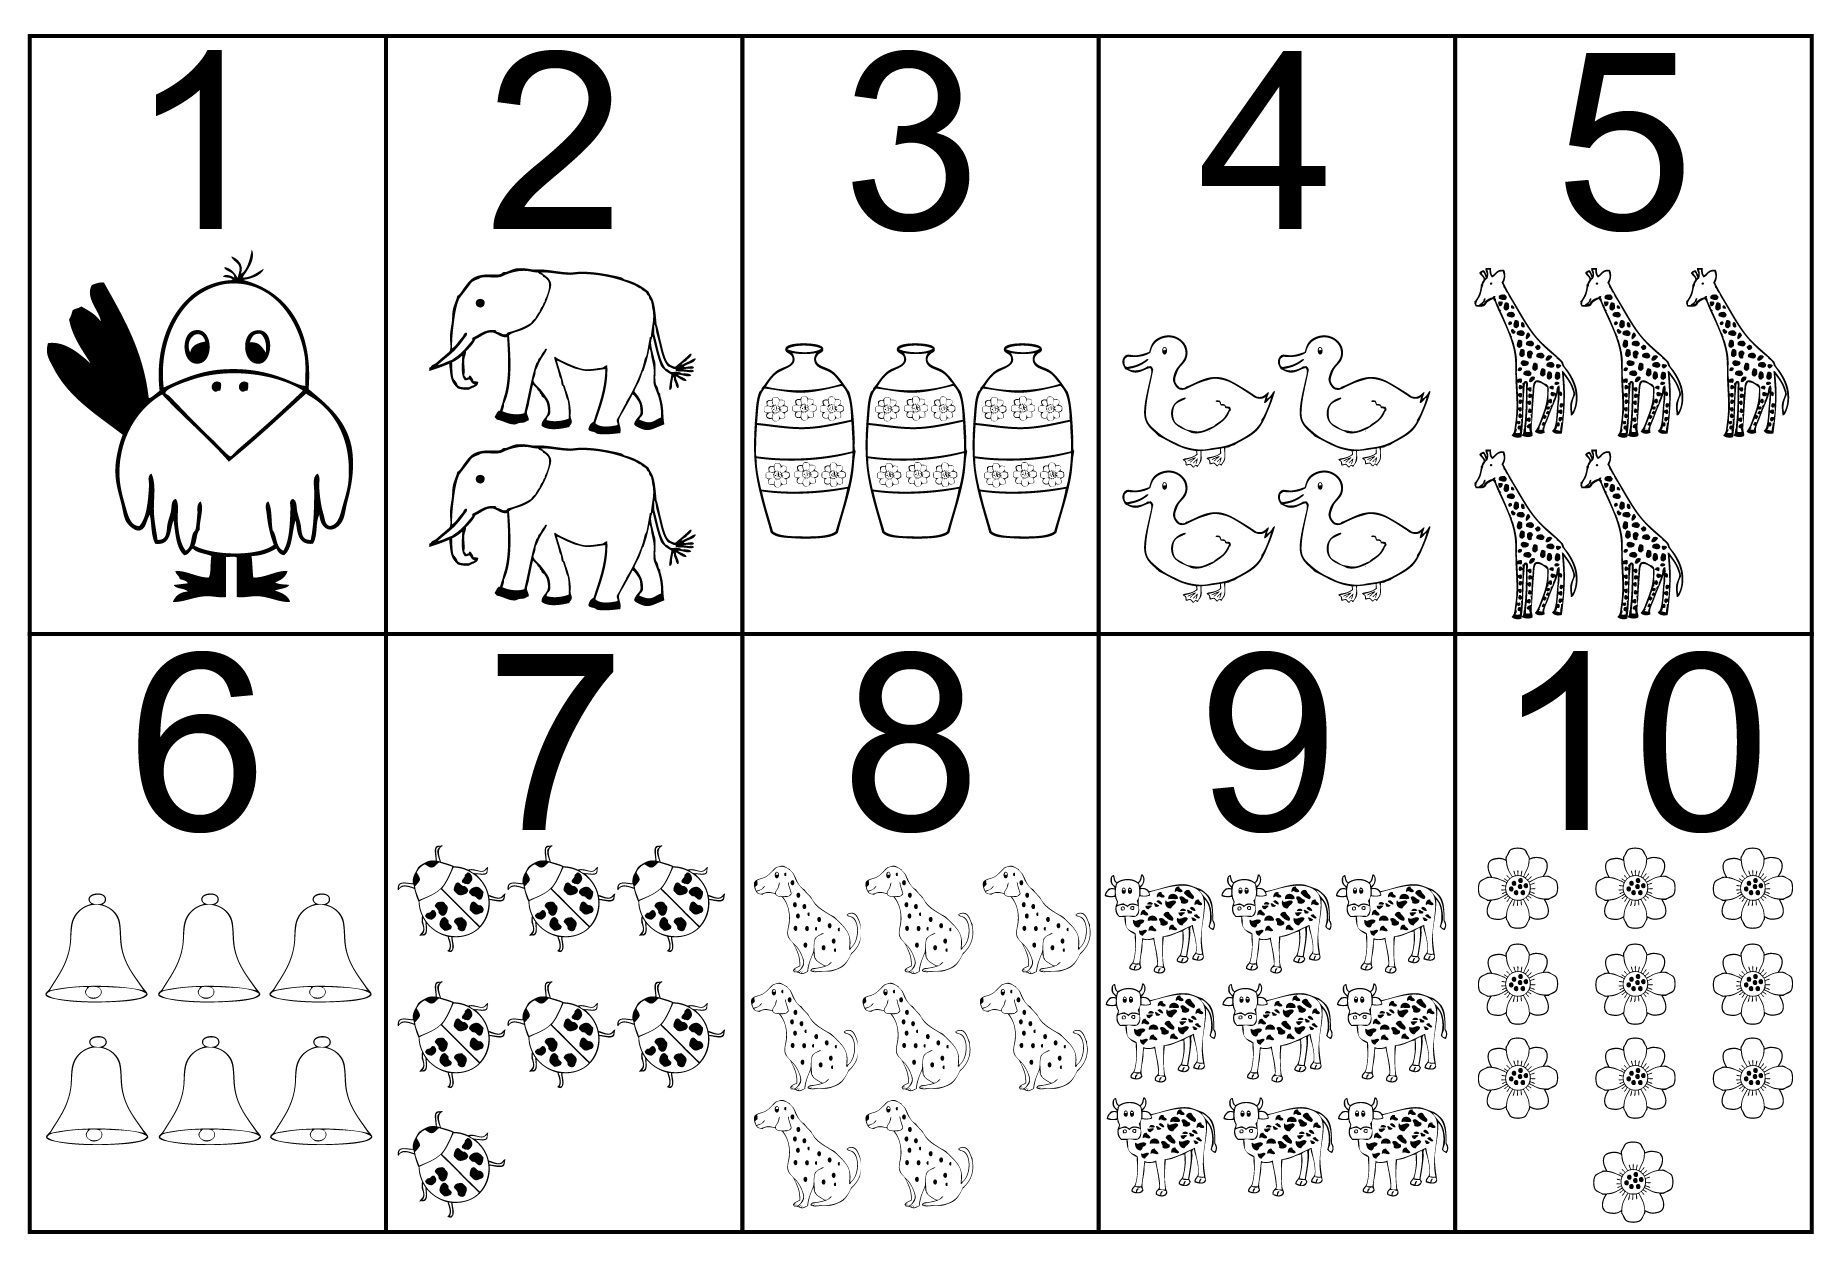 Preschool Number Coloring Pages Collection 11f - Save it to your computer